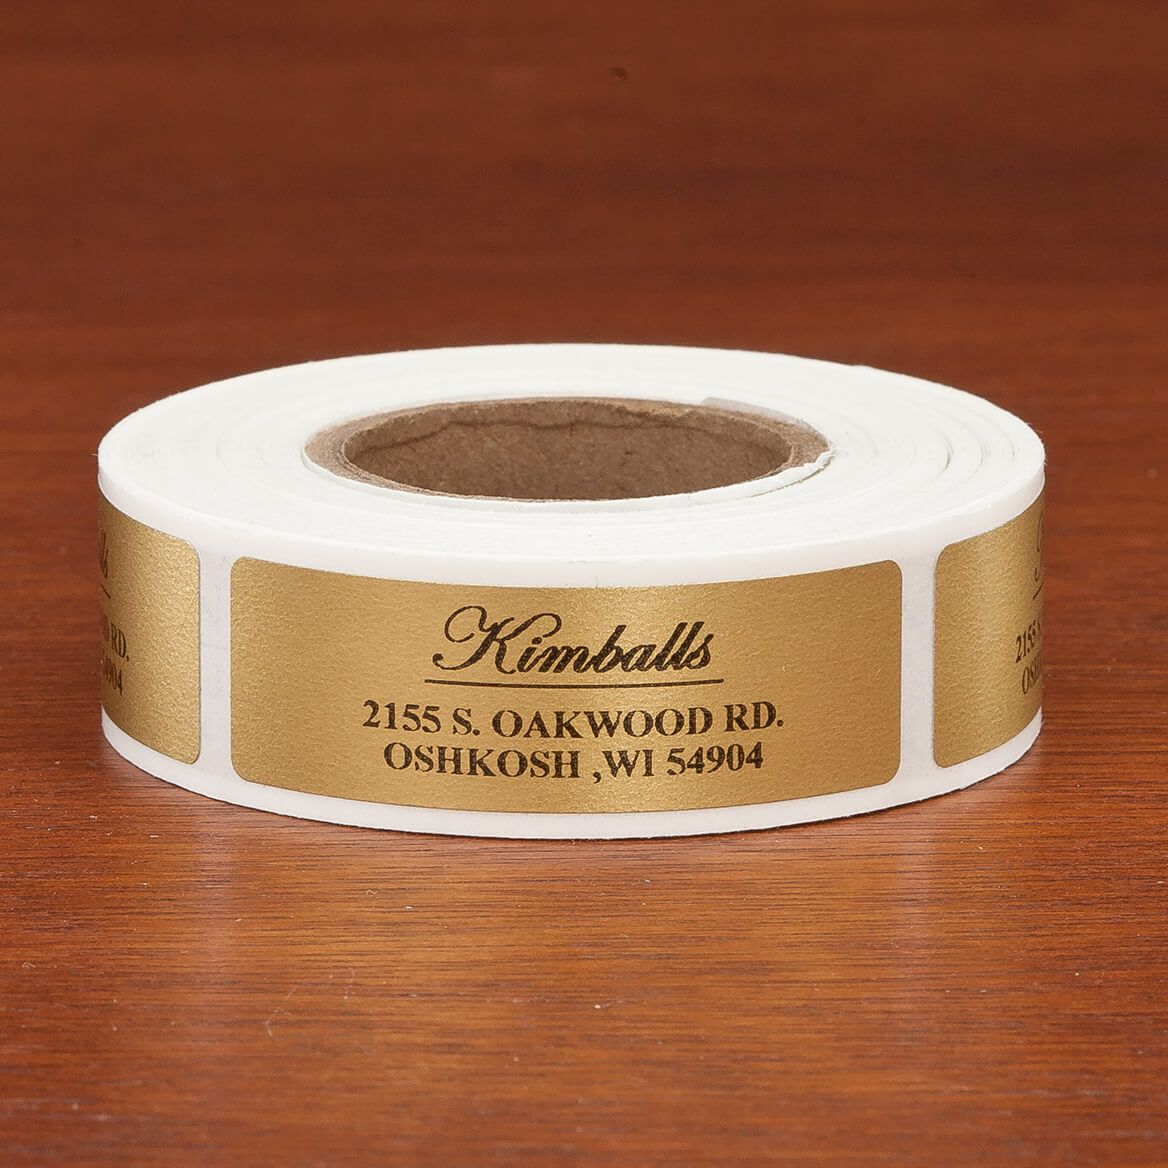 Personalized Elegant and Centered Address Labels 200-357465